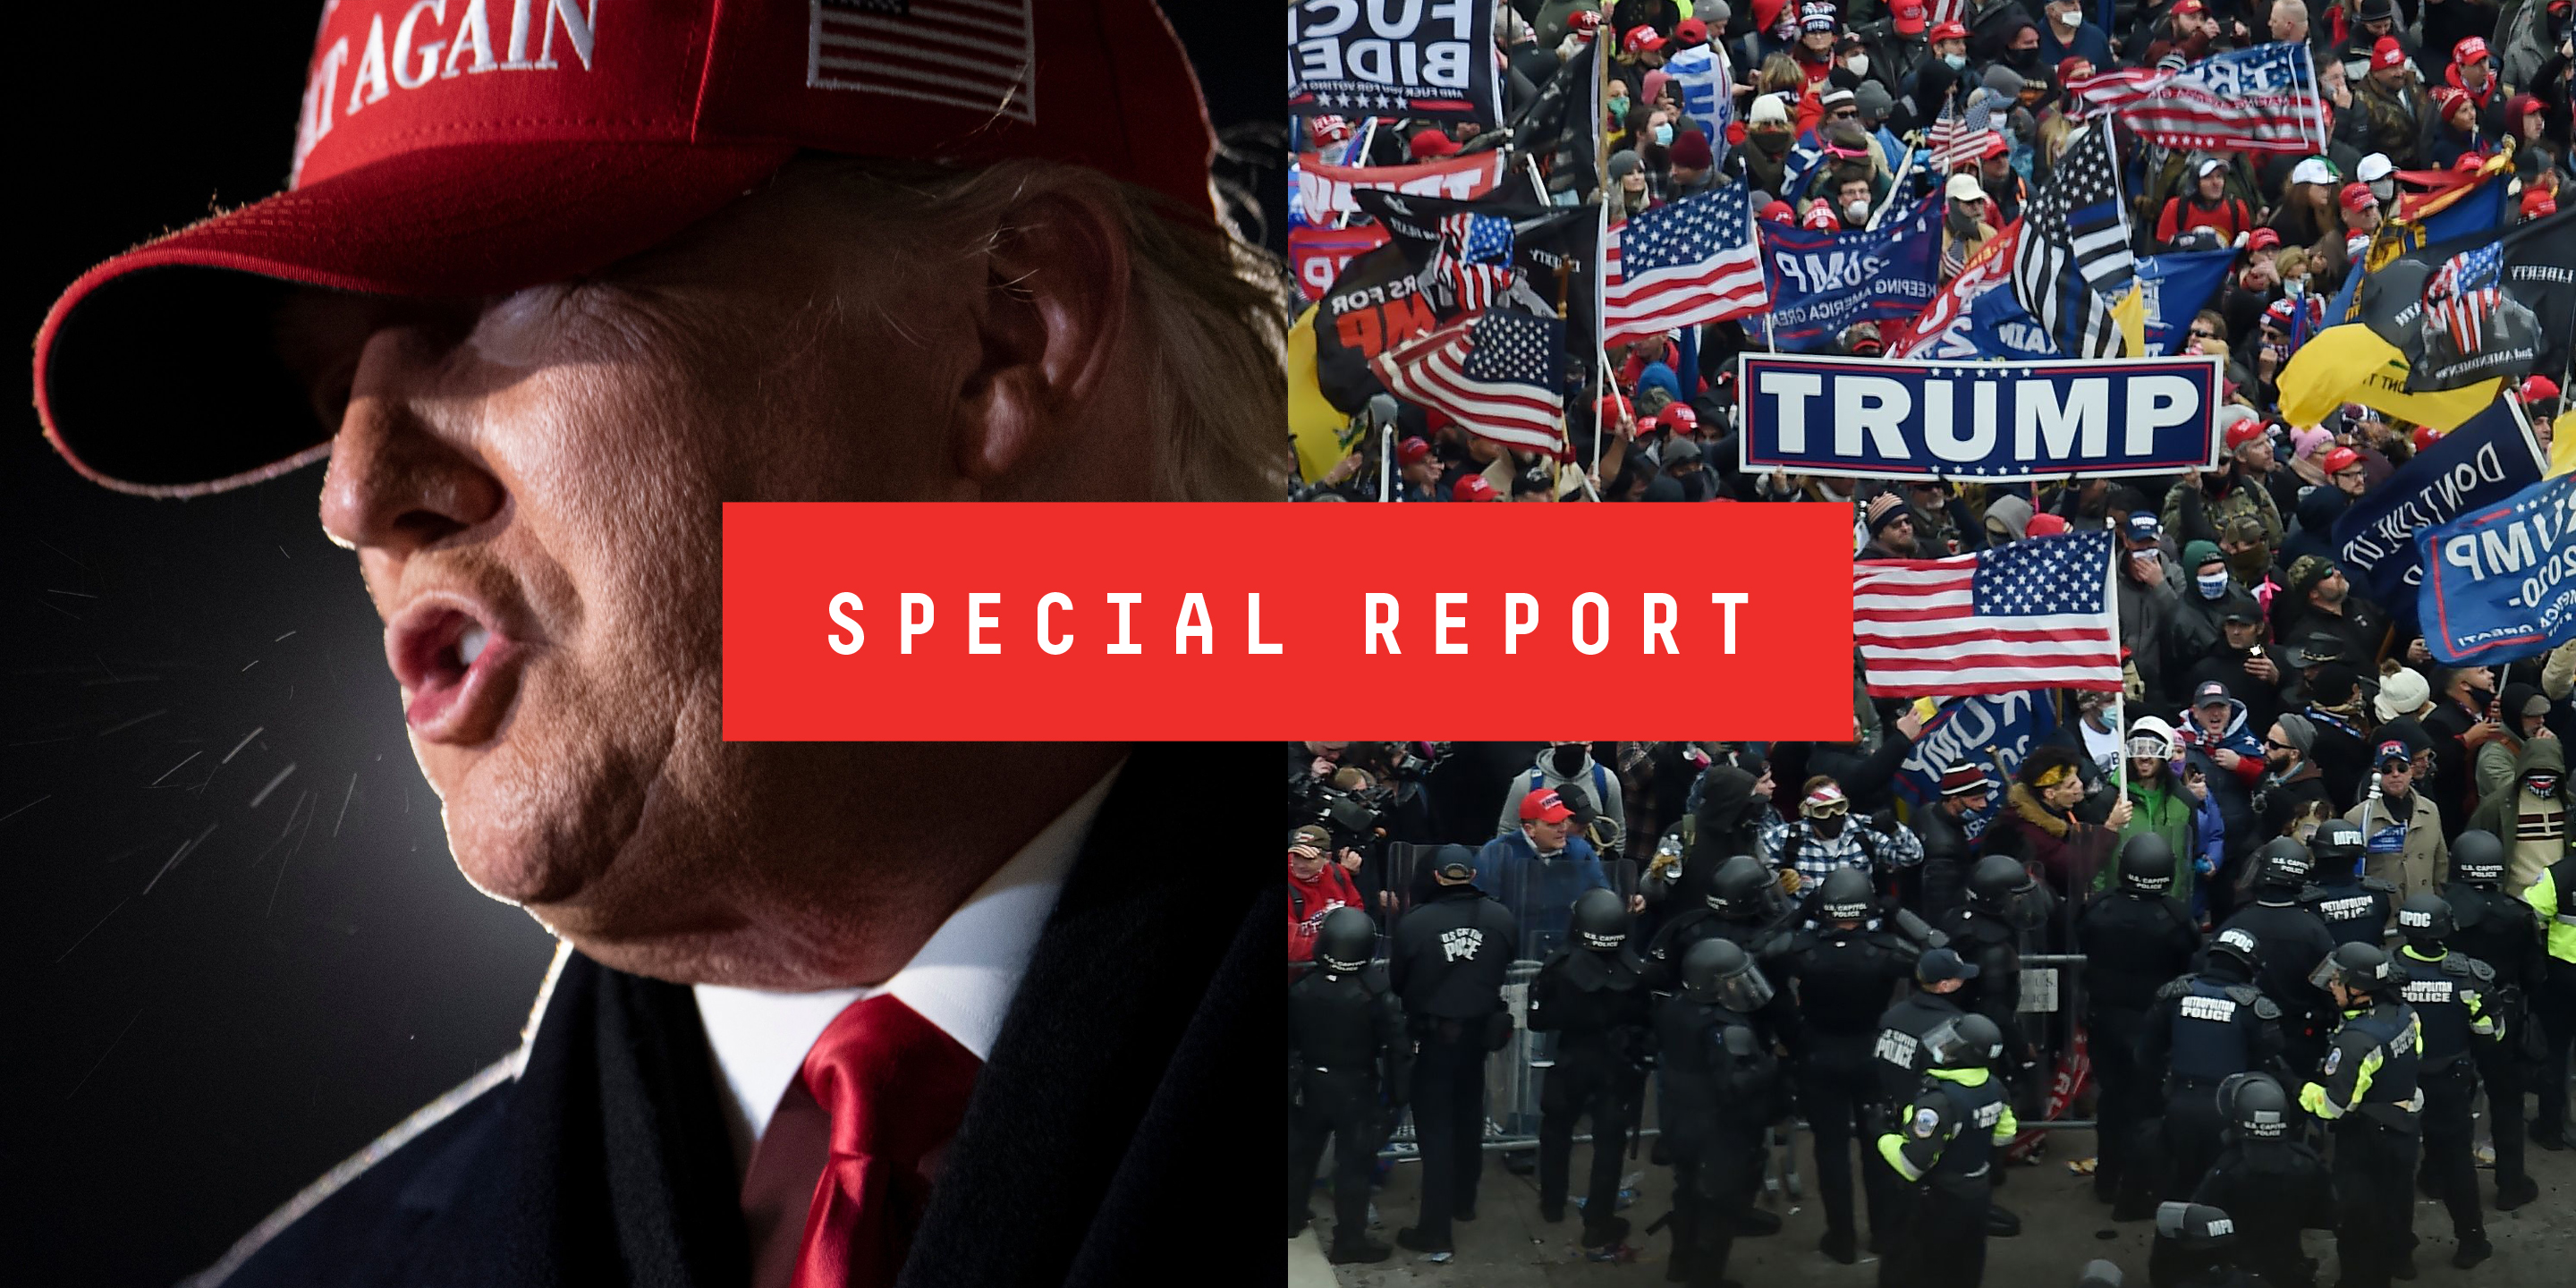 Exclusive: How officials' fear of Donald Trump paralyzed intelligence agencies, led to Capitol riot